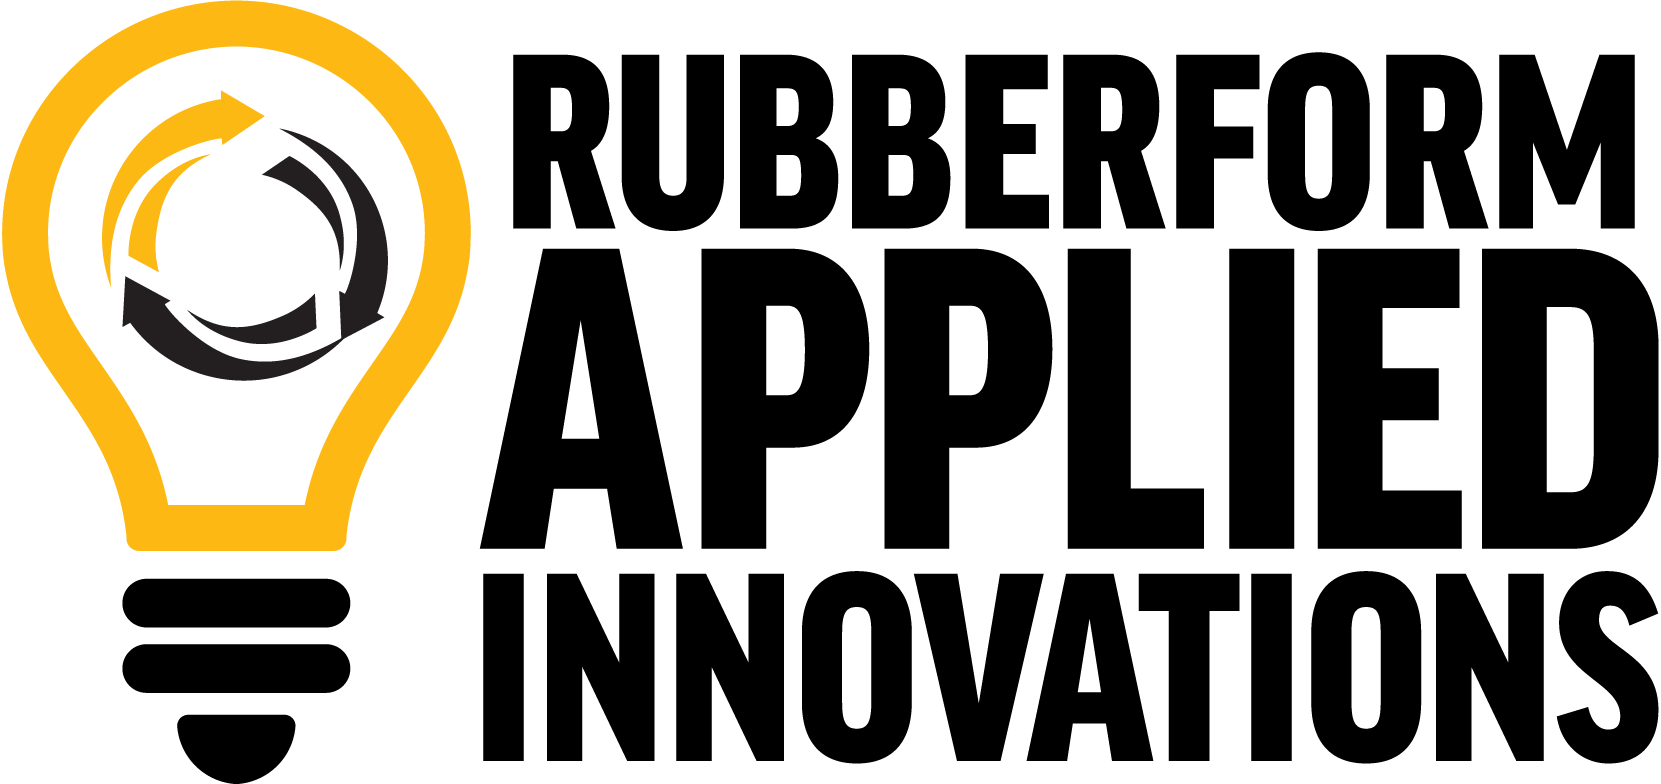 Rubberform applied innovations logo